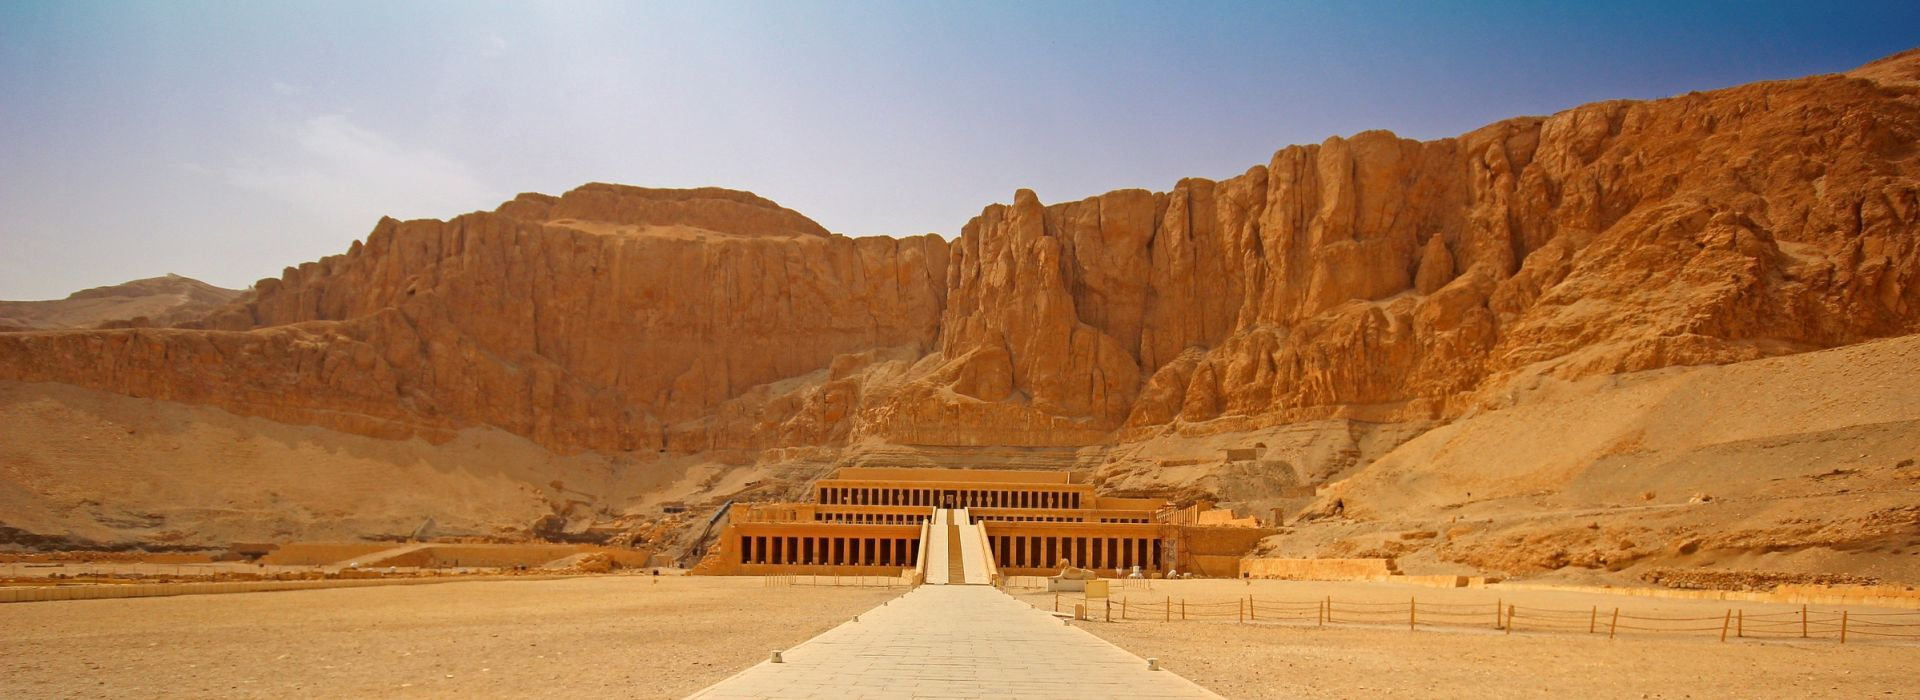 City sightseeing Tours in Giza